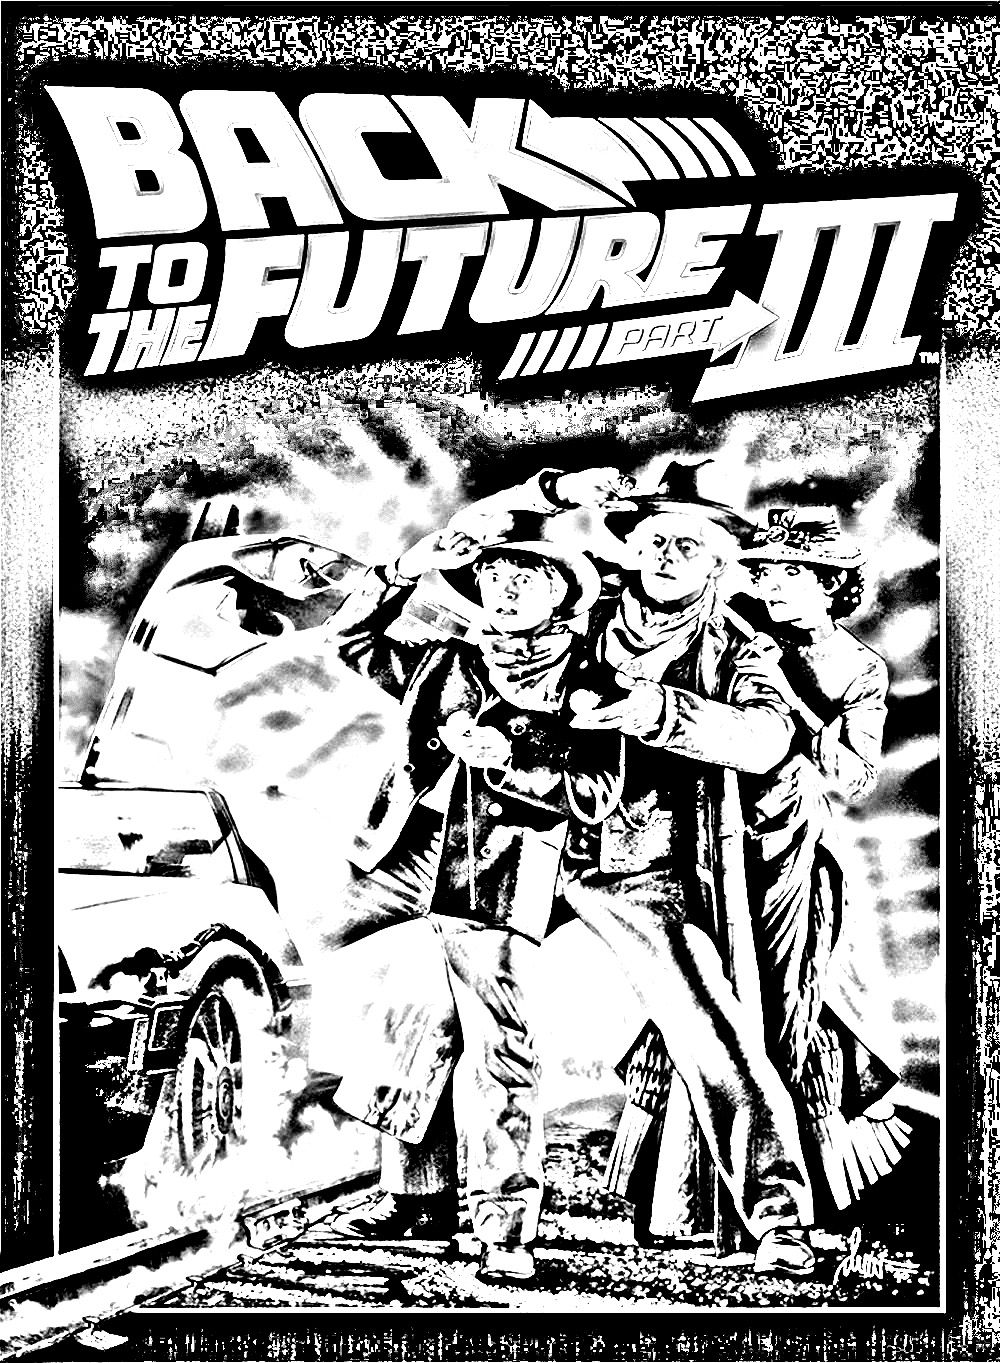 Movie Posters Coloring Pages For Adults Coloring Pages Famous Movie Posters The Future Movie